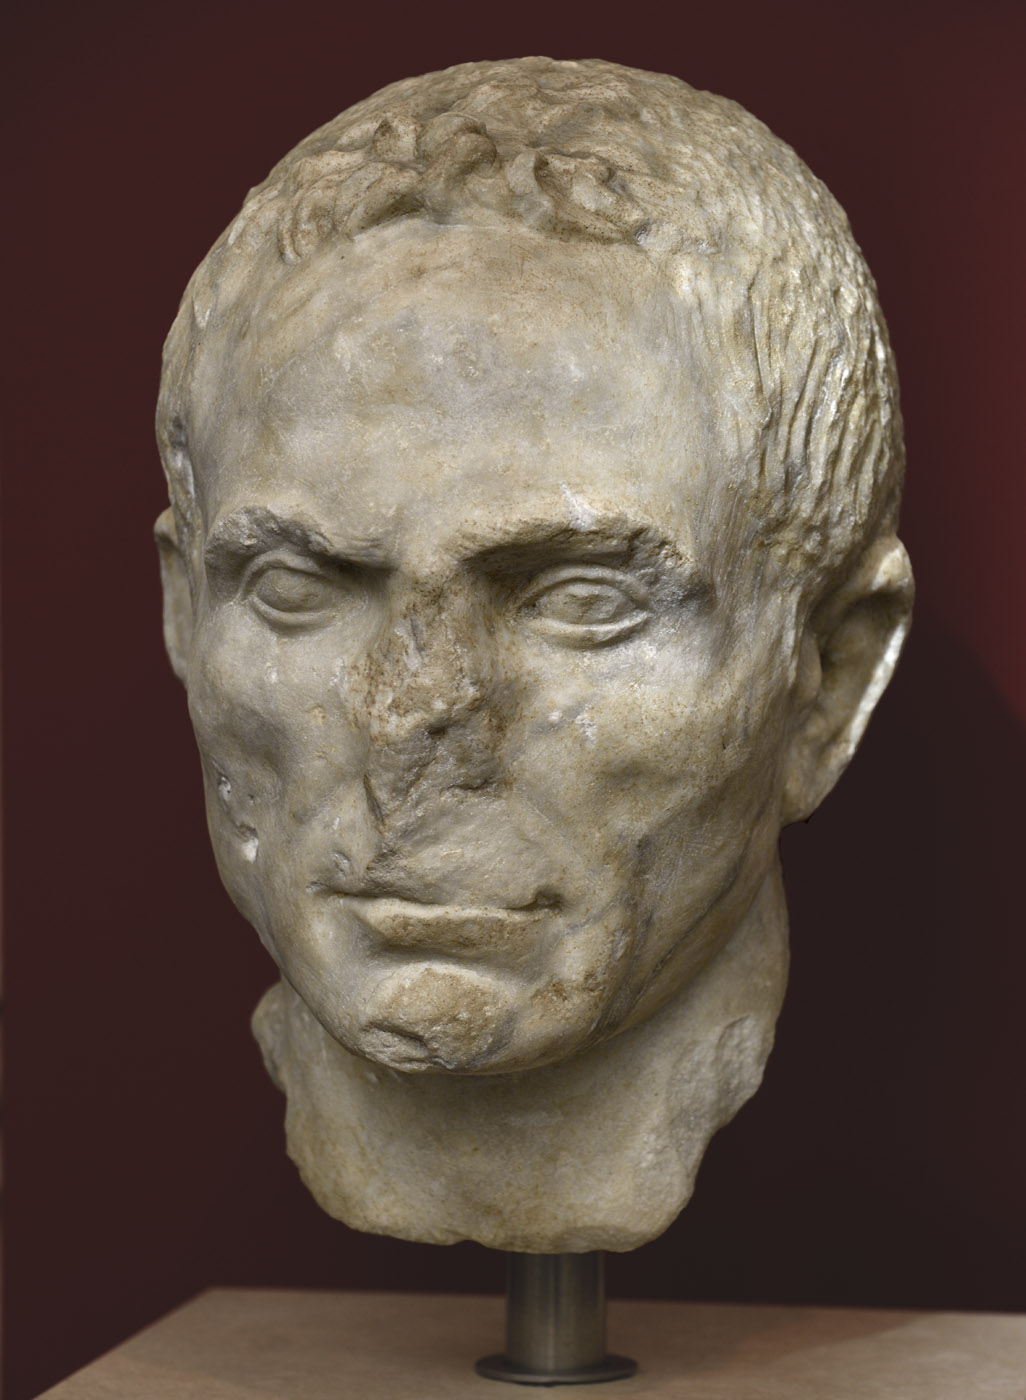 Portrait of aт unknown man. Luna marble. Mid-1st century BCE. Inv. No. 4293. Rome, Roman National Museum, Palazzo Massimo alle Terme